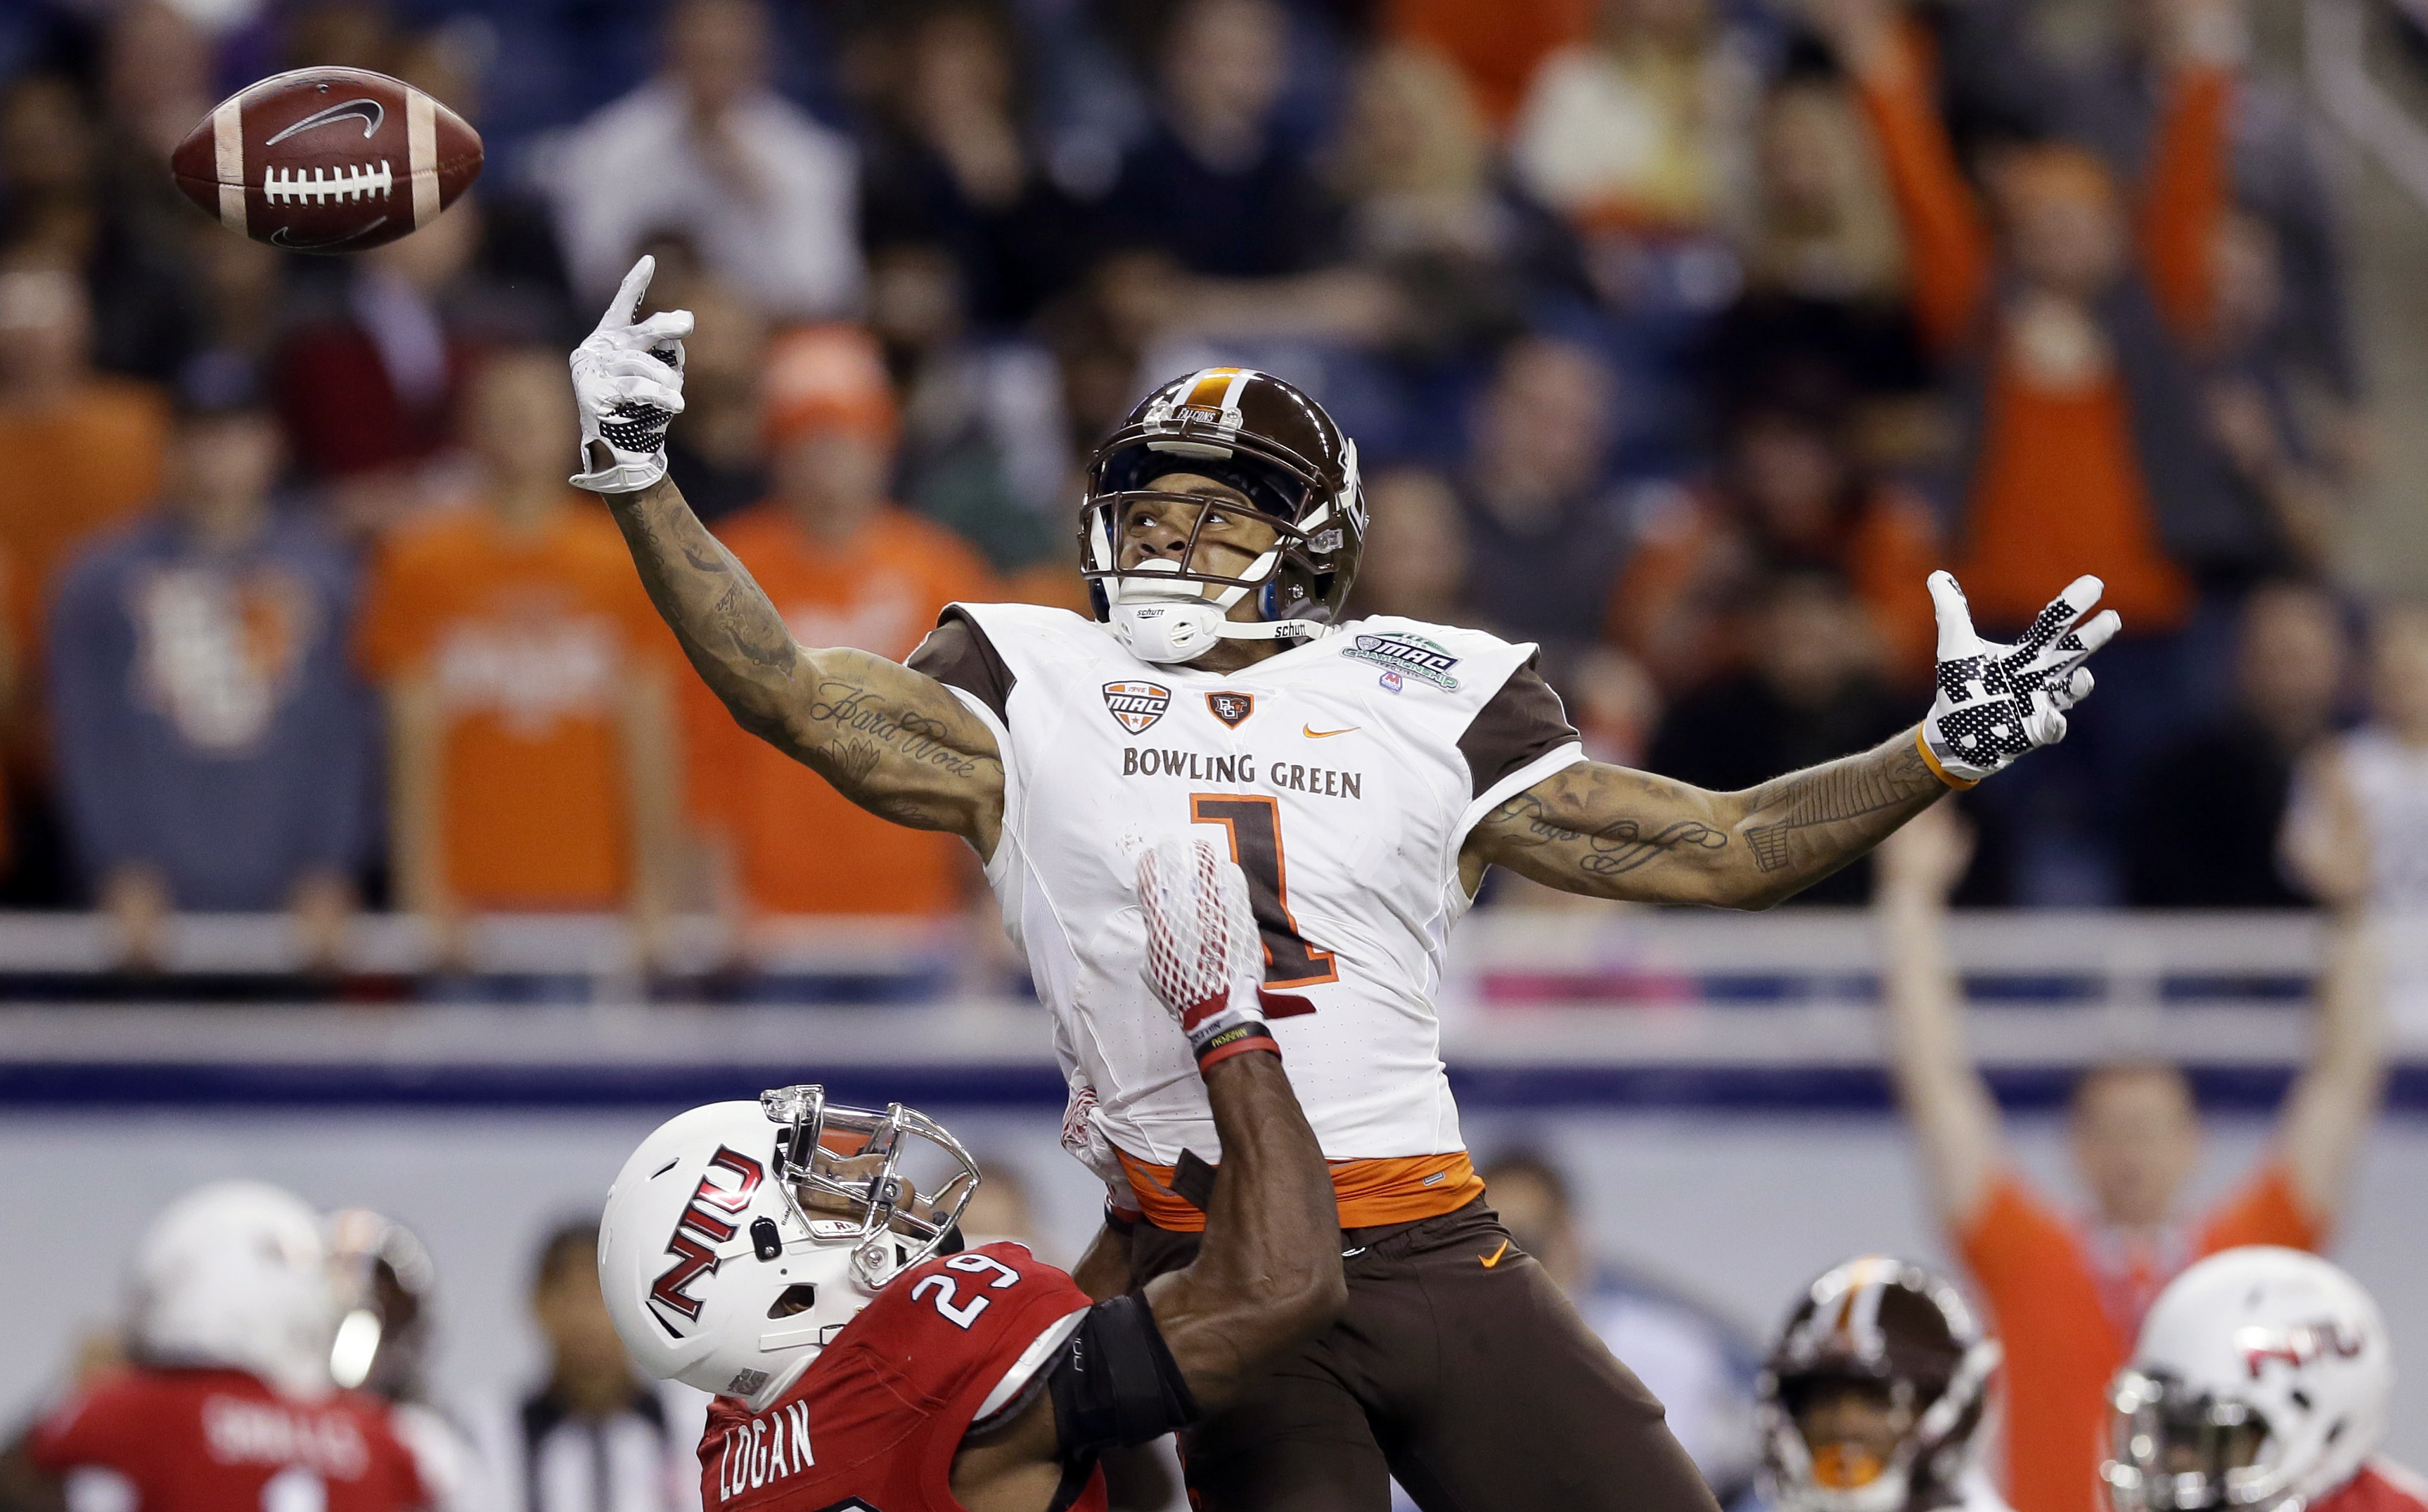 Bowling Green wide receiver Roger Lewis, top, defended by Northern Illinois cornerback Paris Logan (29) is unable to reach a pass in the end zone during the first half of the Mid-American Conference championship NCAA college football game, Friday, Dec. 4,